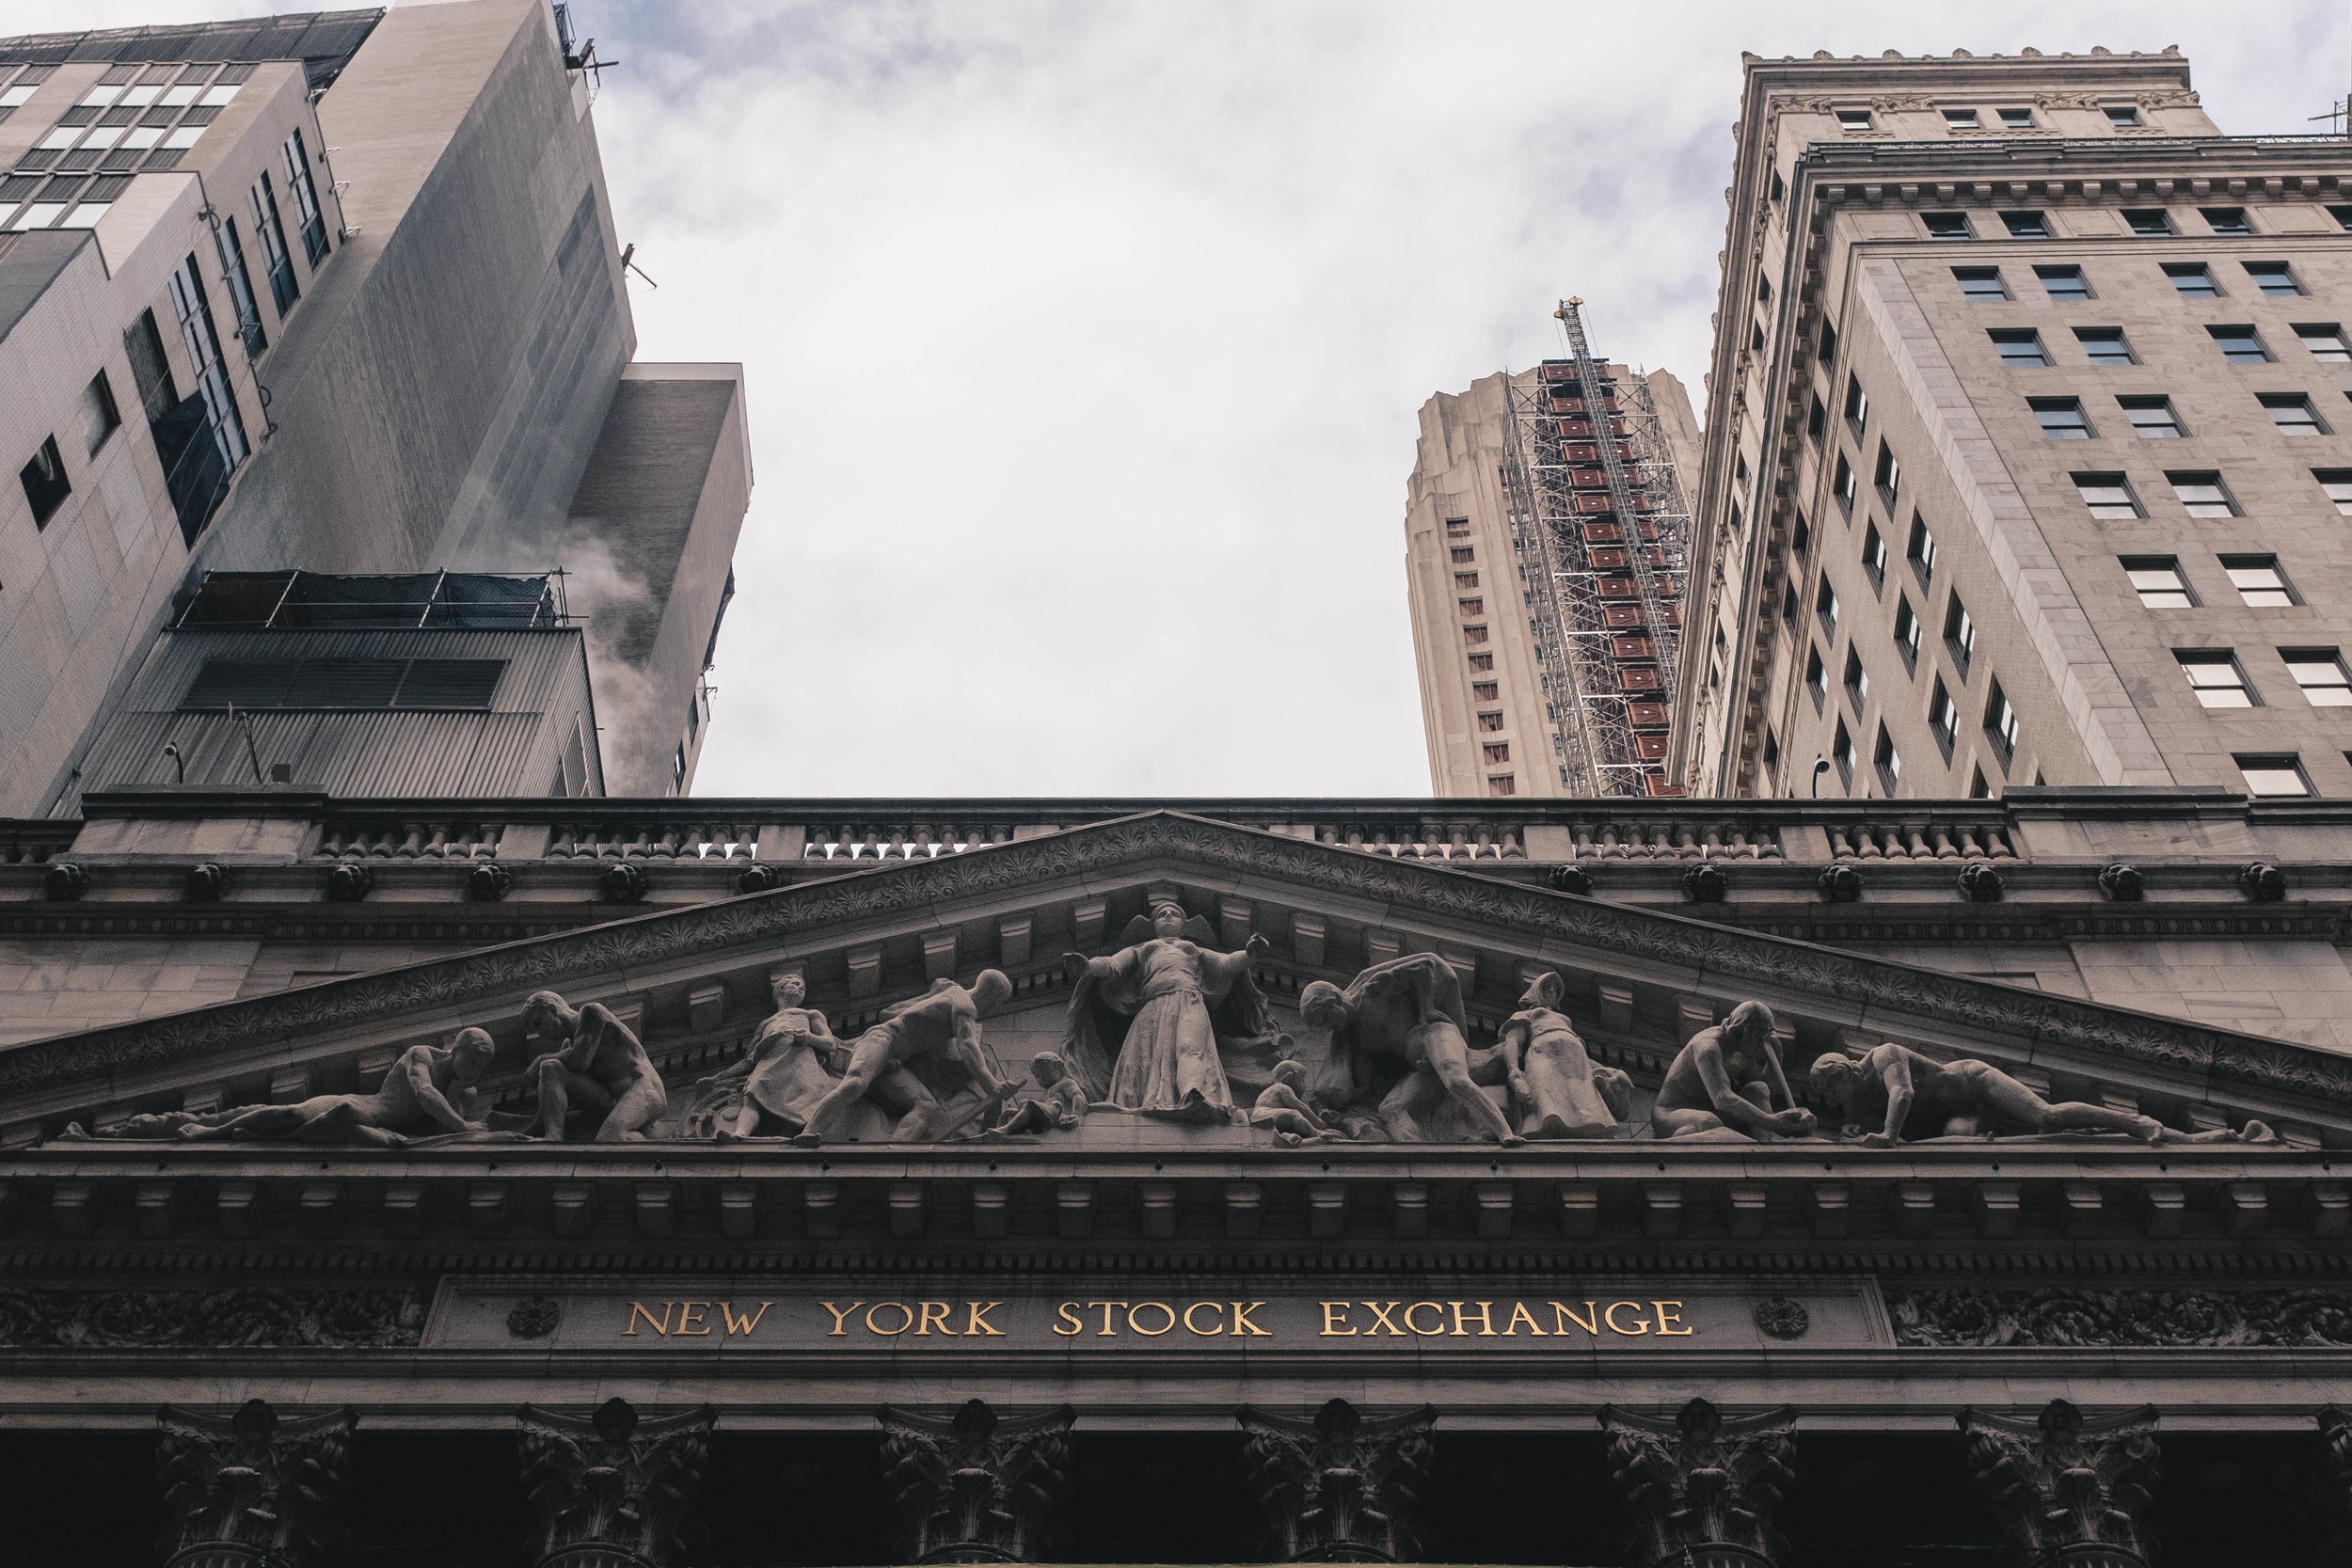 The New York Stock Exchange has been through the boom and bust of the American economy - it is no less important today than it was 100 years ago